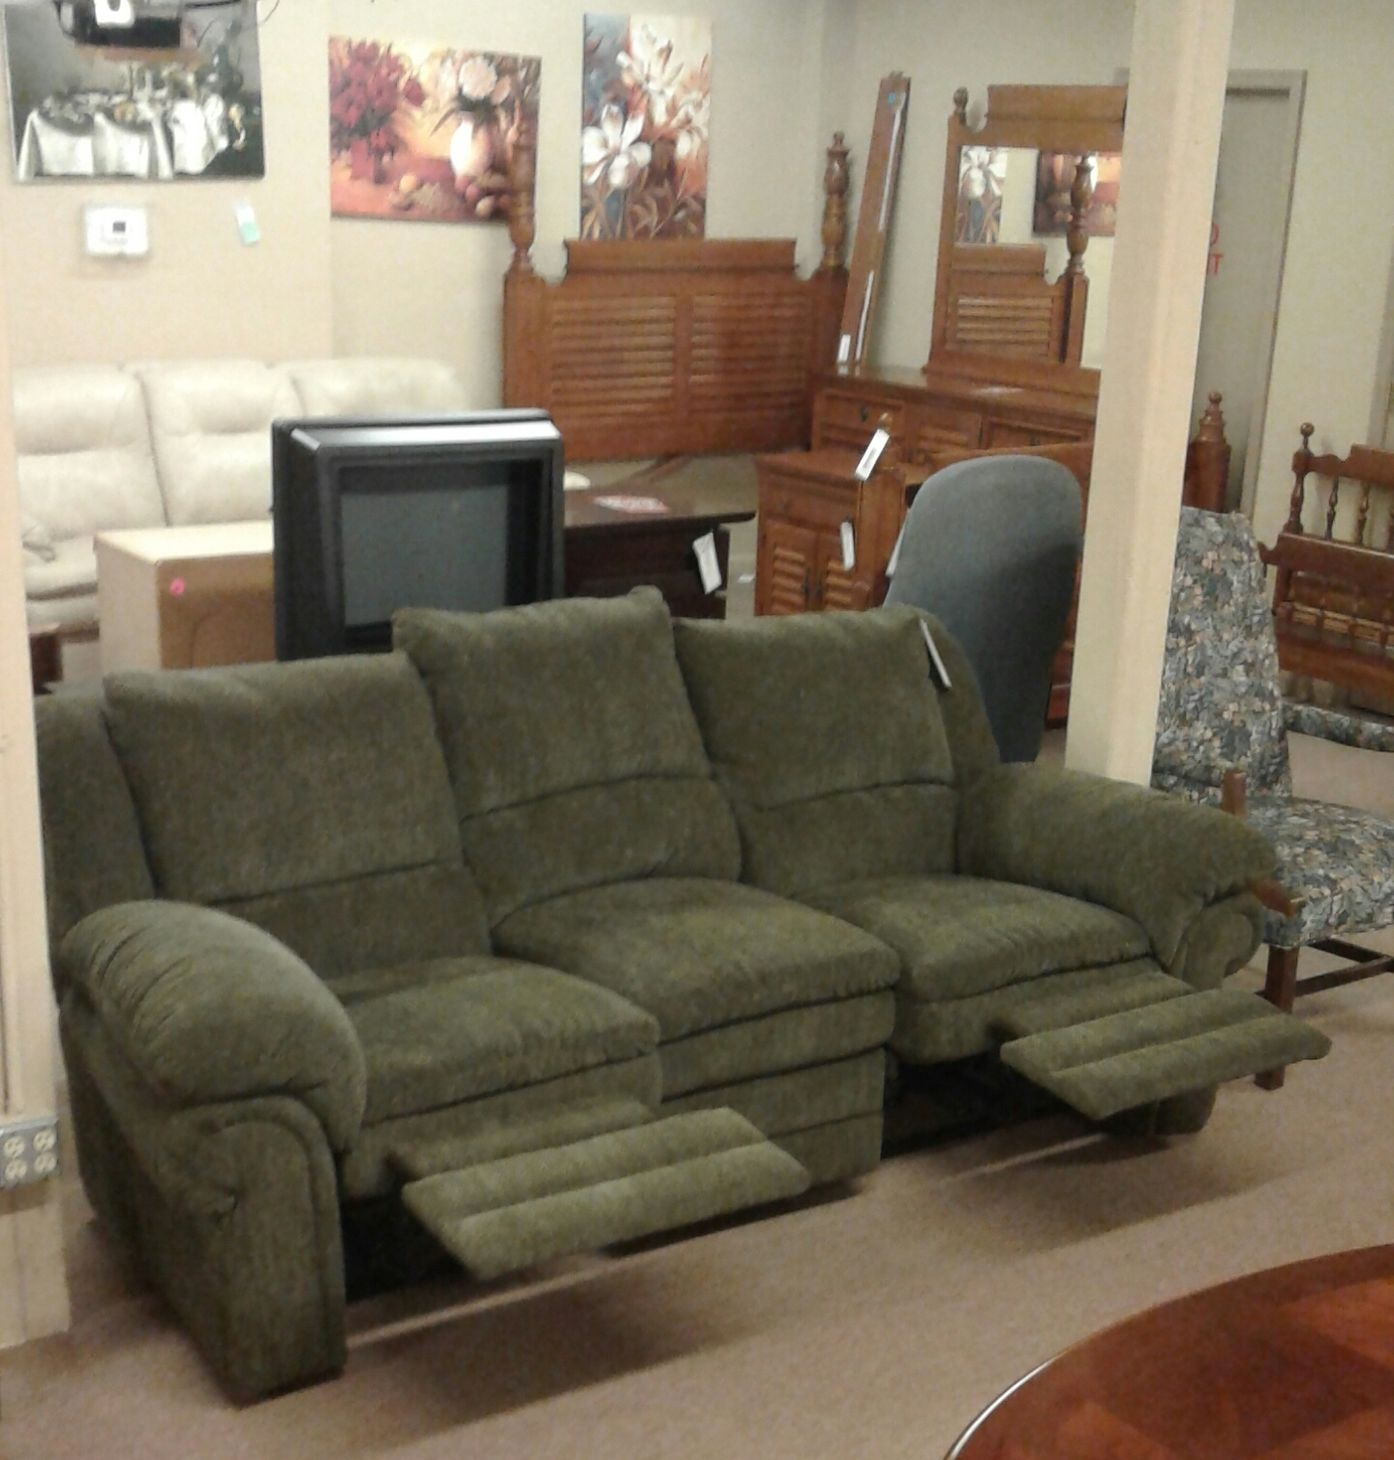 Lane Green Reclining Sofa   Delmarva Furniture Consignment In Green Sectional Sofas (View 1 of 15)